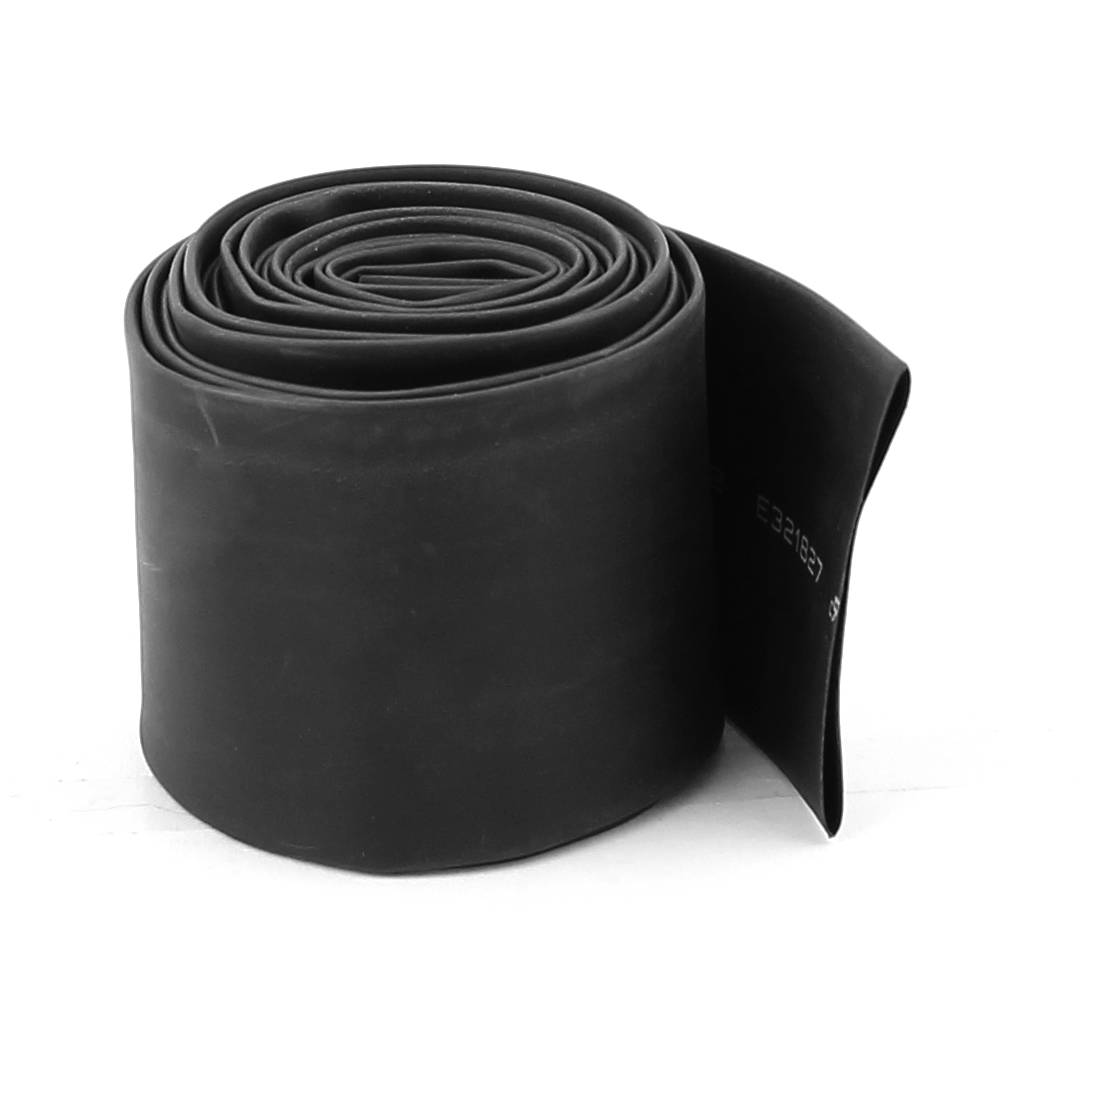 30mm Dia 2M Long Wire Wrap Heat Shrinkable Shrink Tube Sleeve Black